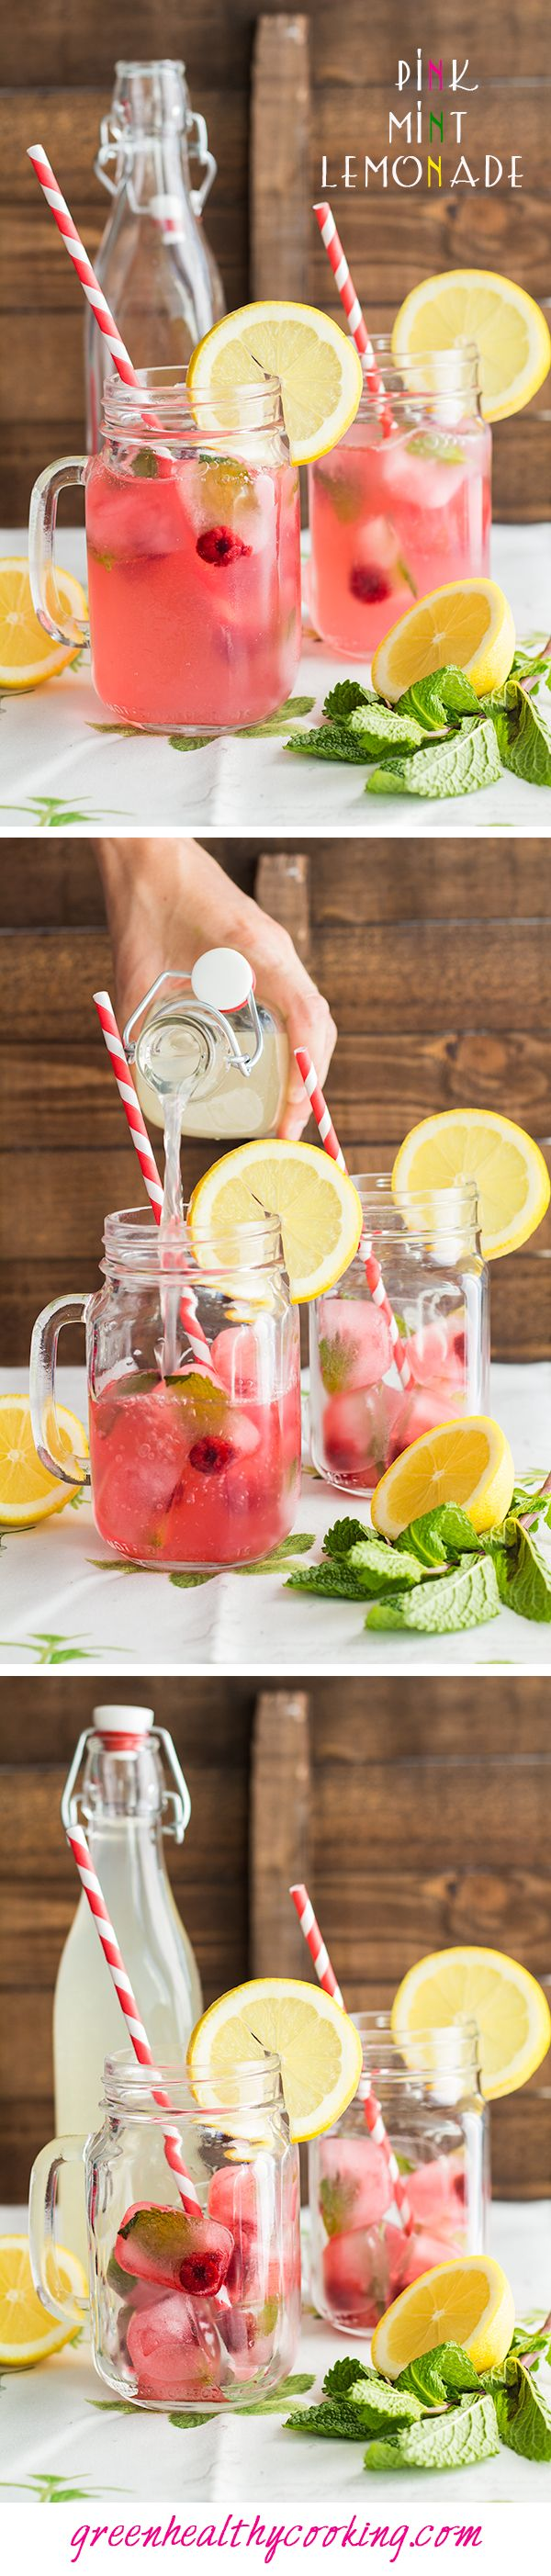 Pink Mint Lemonade - THE most awesome lemonade you will ever try! It is super refreshing, healthy, yummy AND darn beautiful, don't you think?